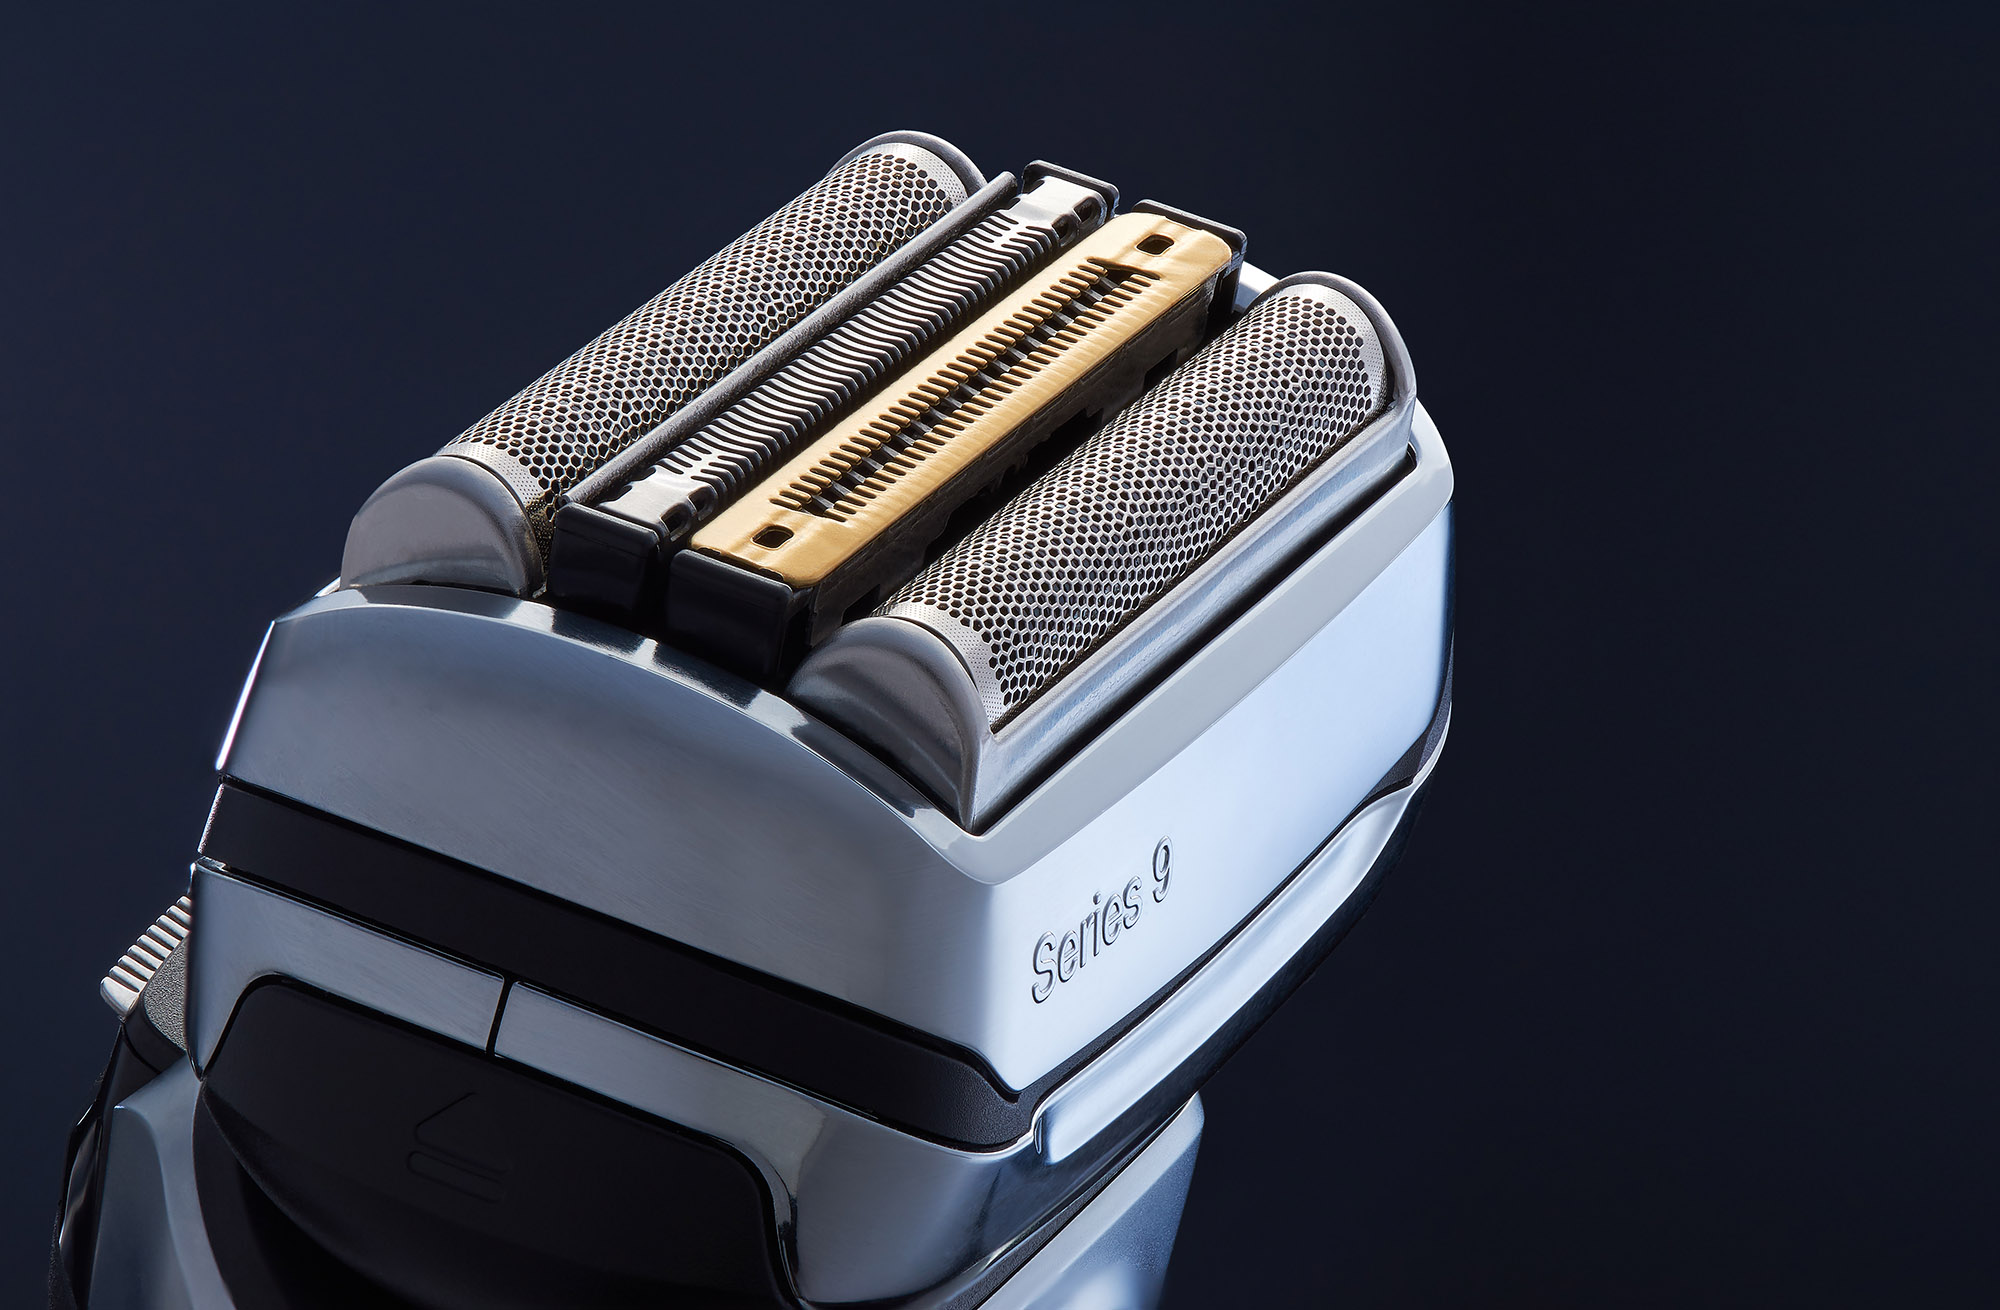 Ian Knaggs Commercial Product Photographer - Braun Shaver Close Up